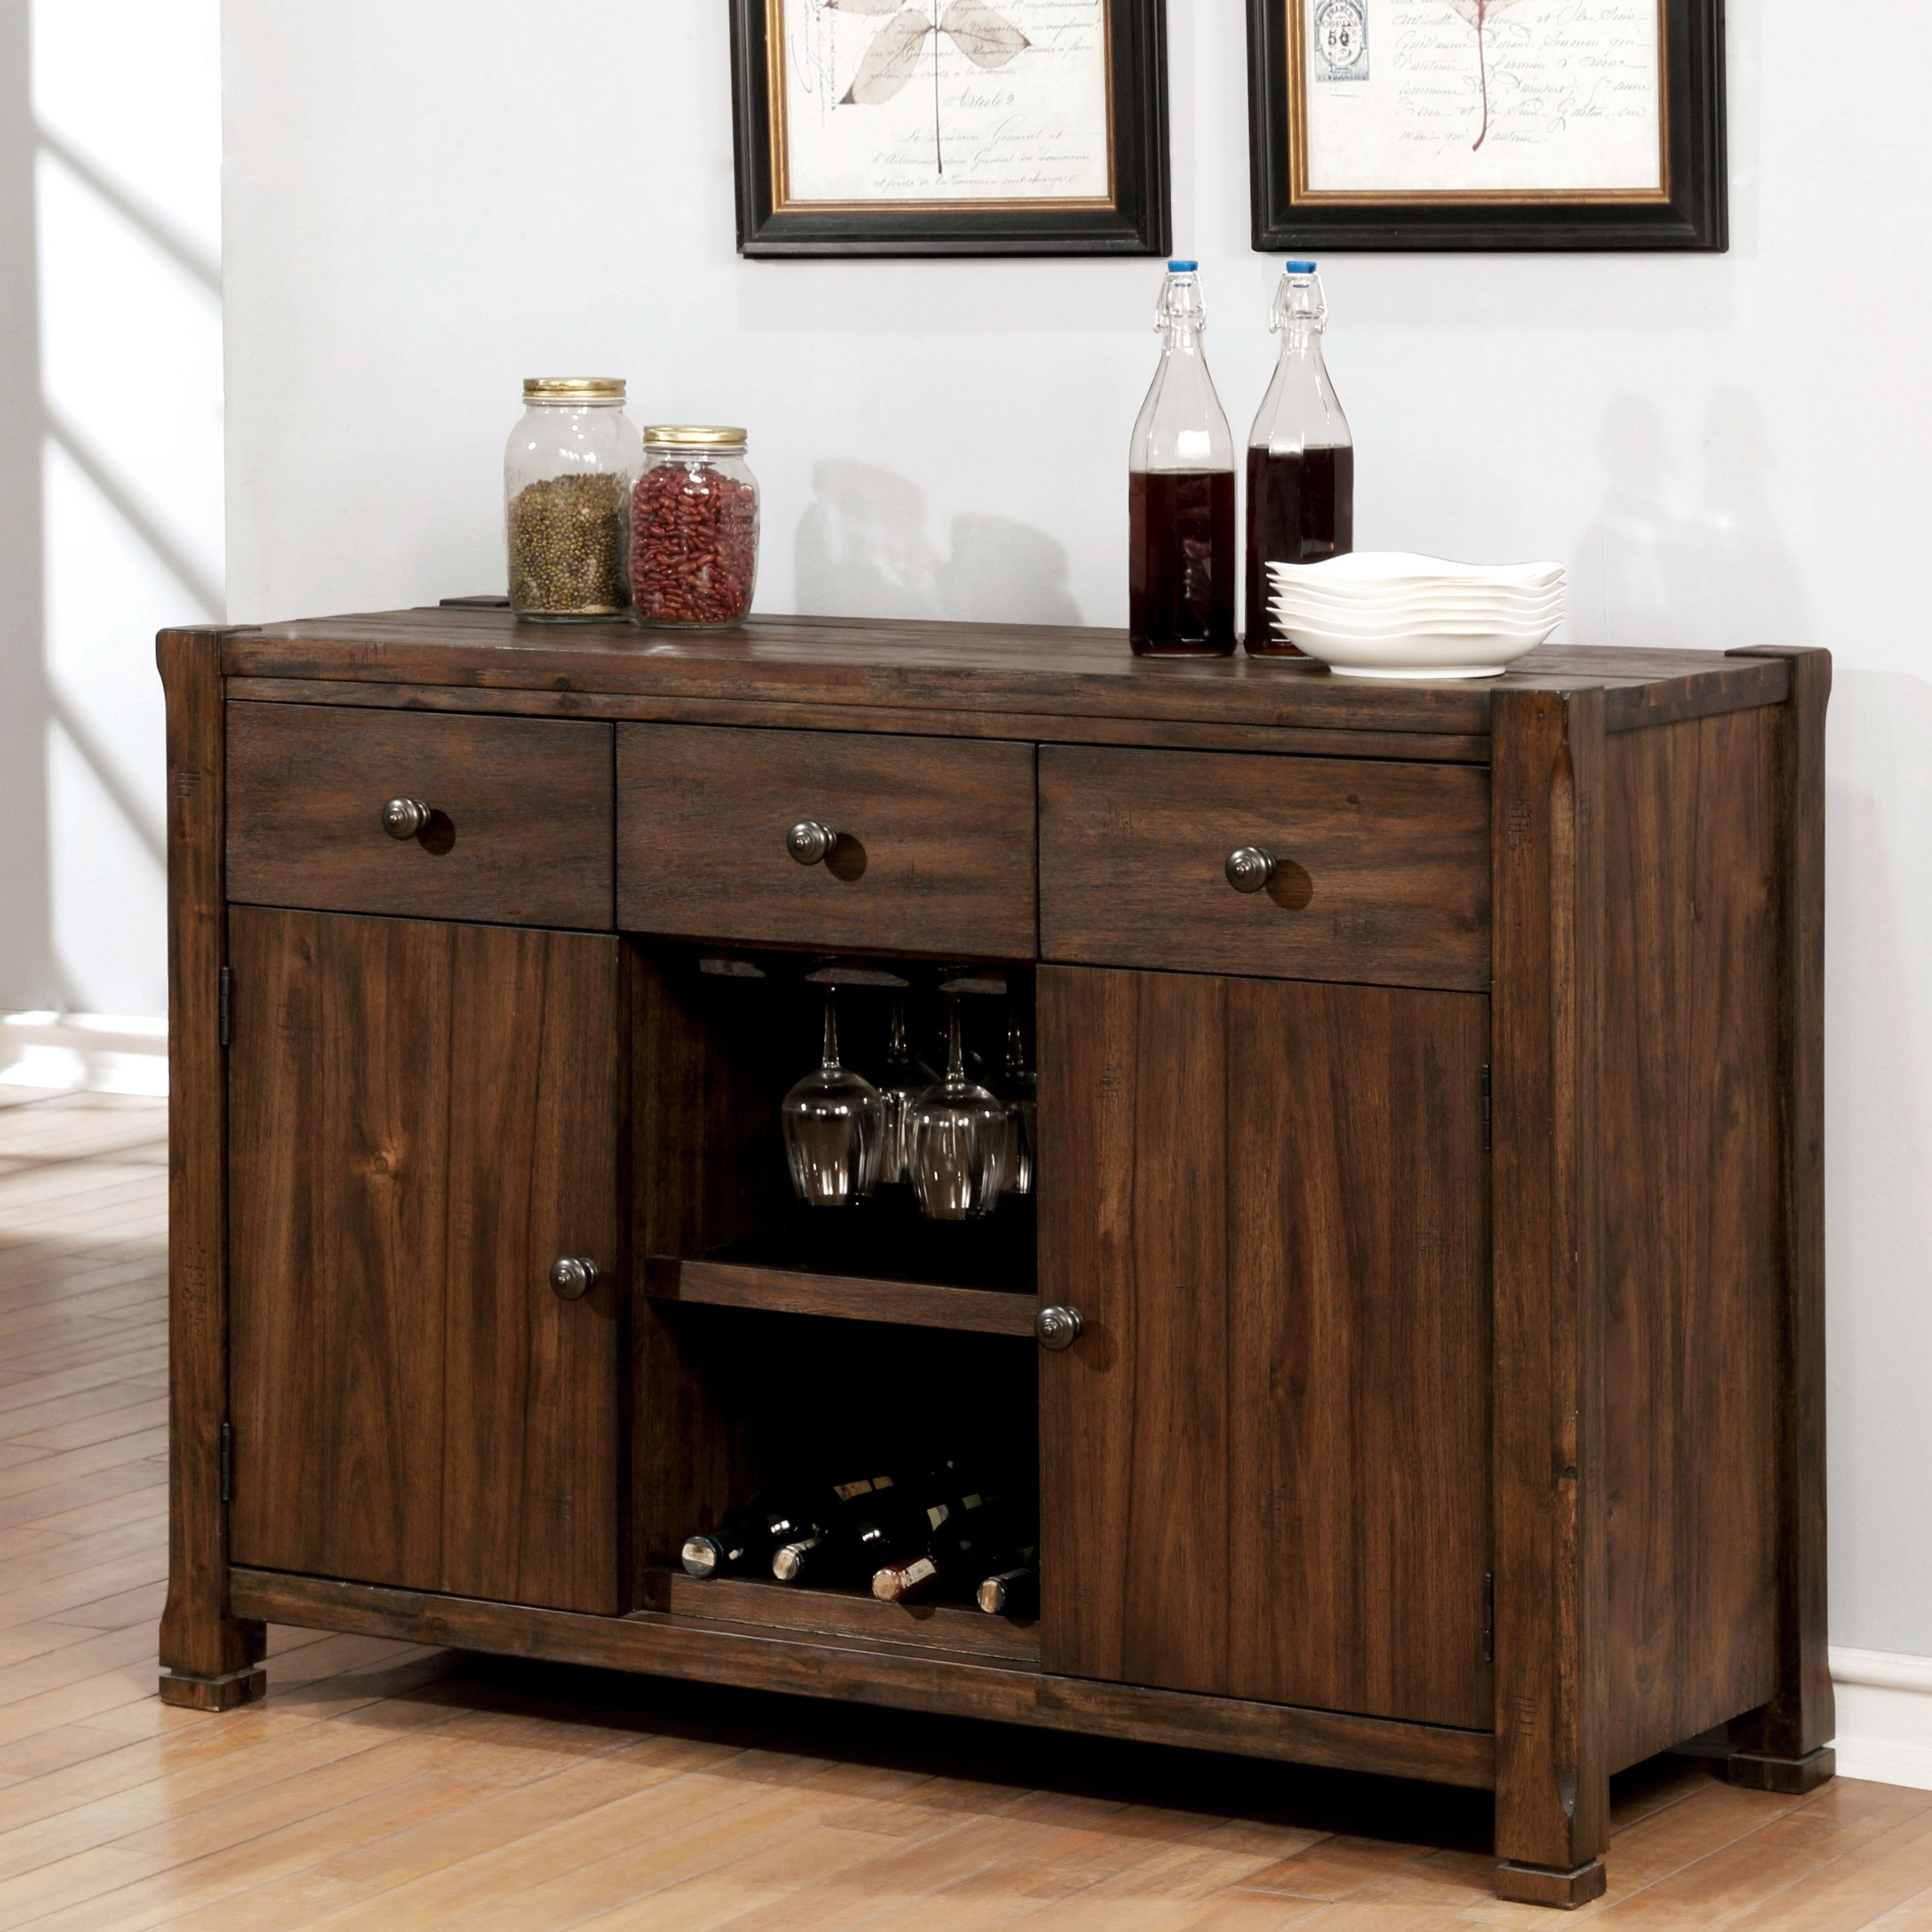 Carbon Loft Sawalha Rustic Walnut 3-Drawer Buffet throughout Rustic Walnut Dining Buffets (Image 8 of 30)